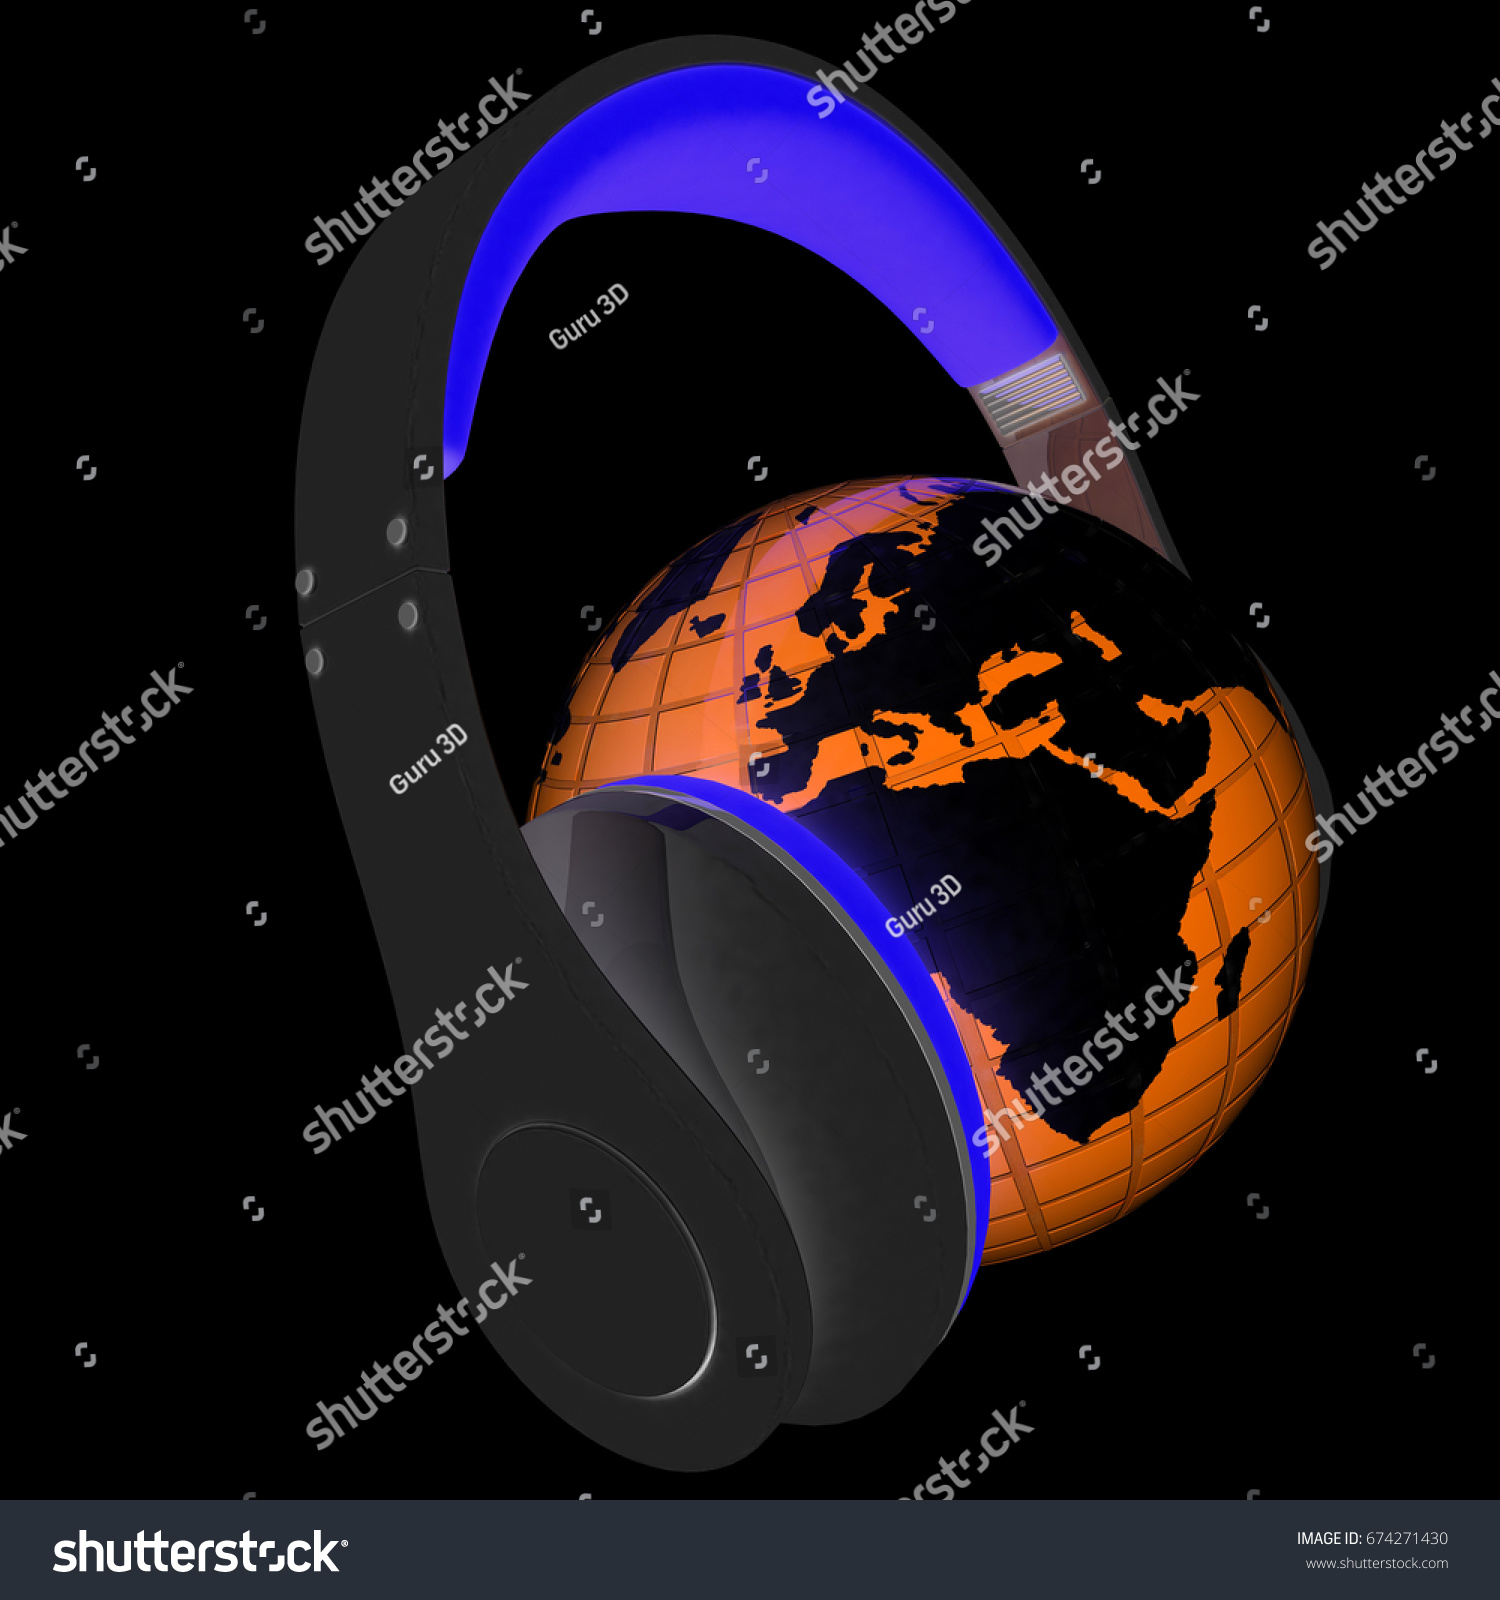 Abstract symbol music earth 3d illustration stock illustration abstract symbol music and earth 3d illustration on a black background buycottarizona